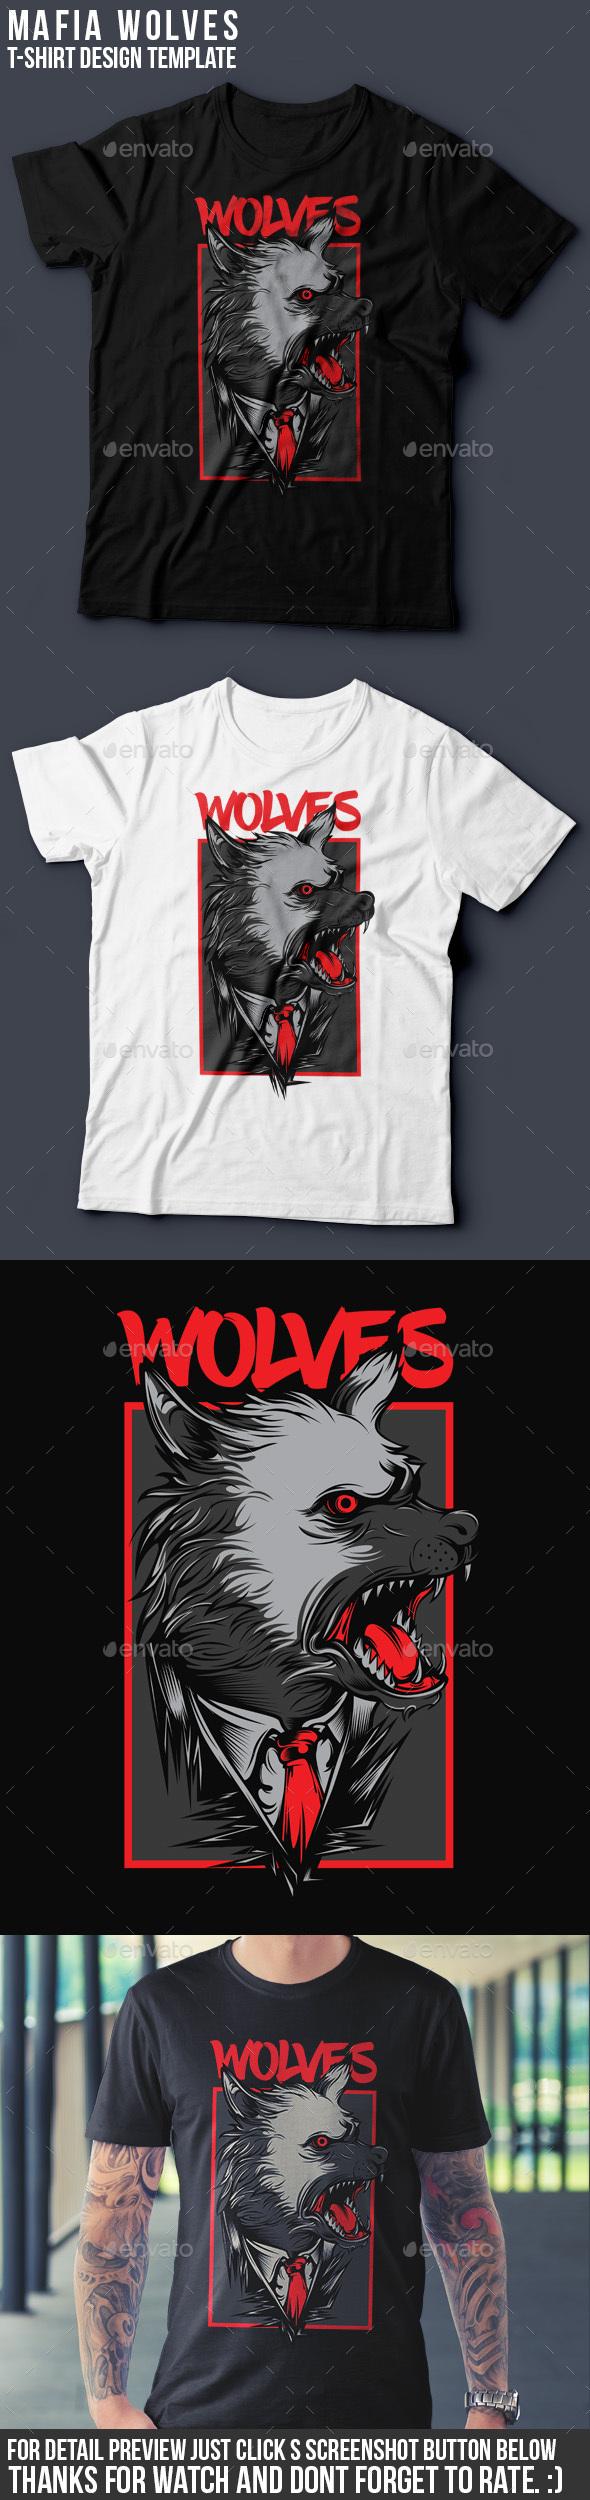 Mafia Wolves T-Shirt Design - Grunge Designs